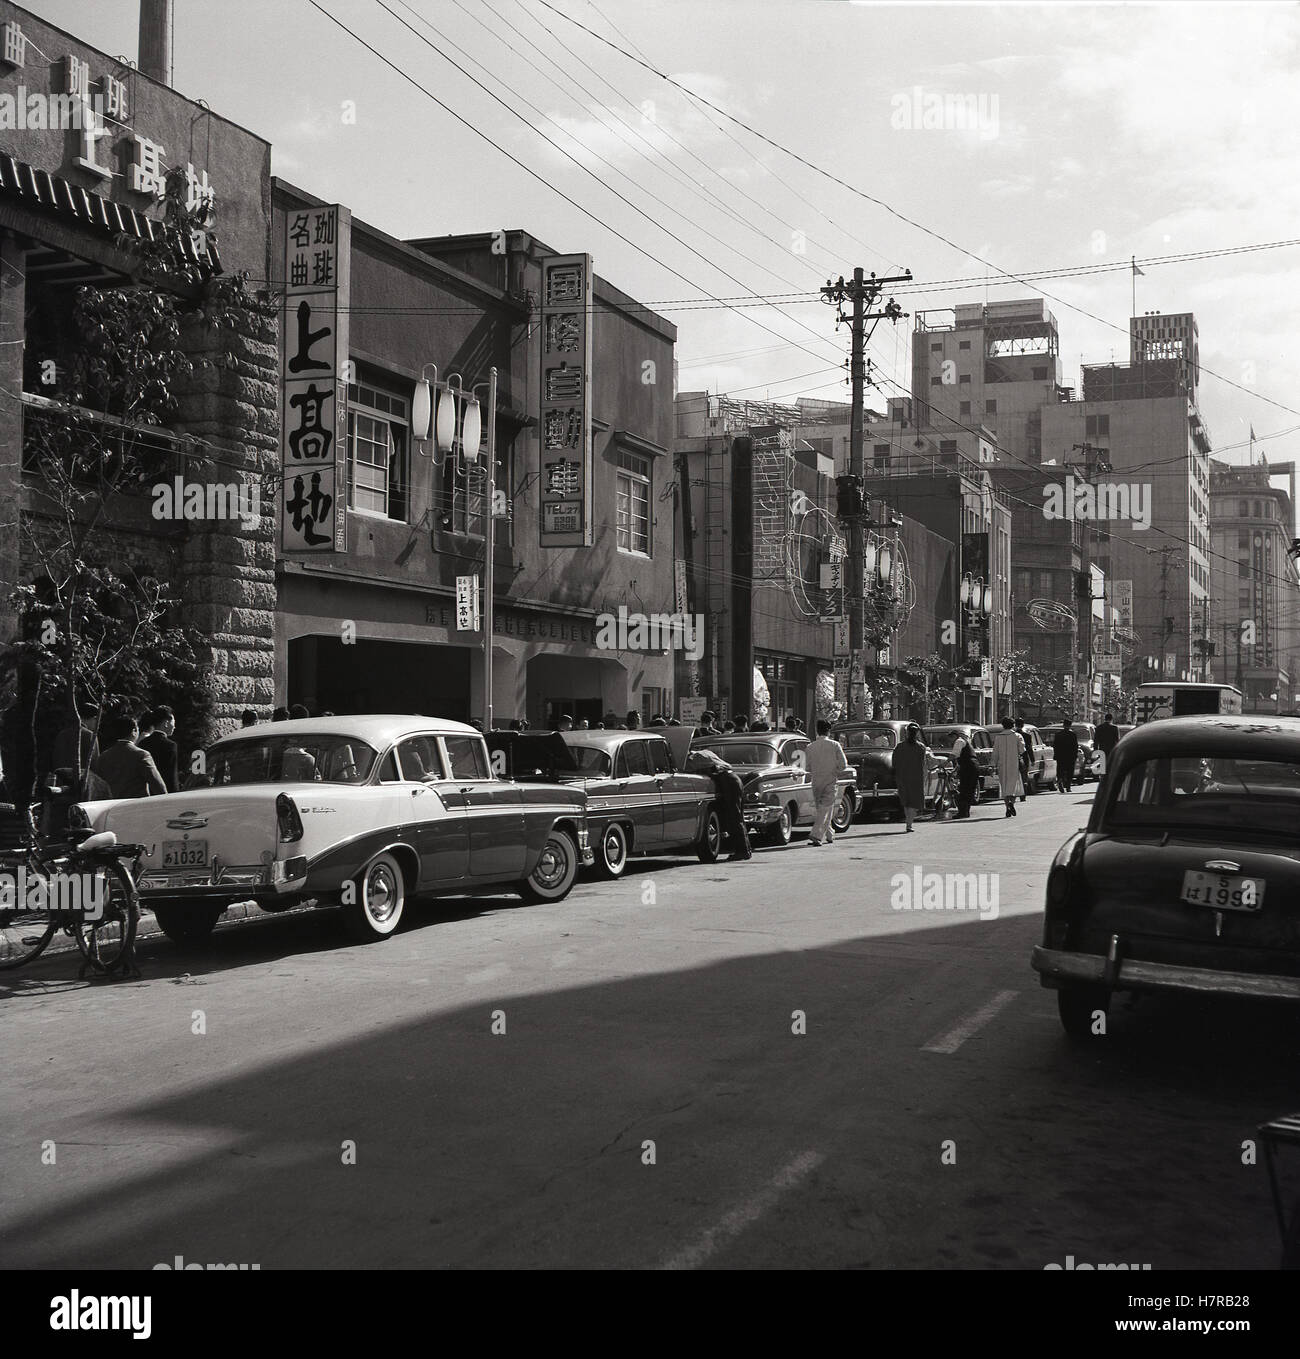 Japan Street 1950s High Resolution Stock Photography and ...